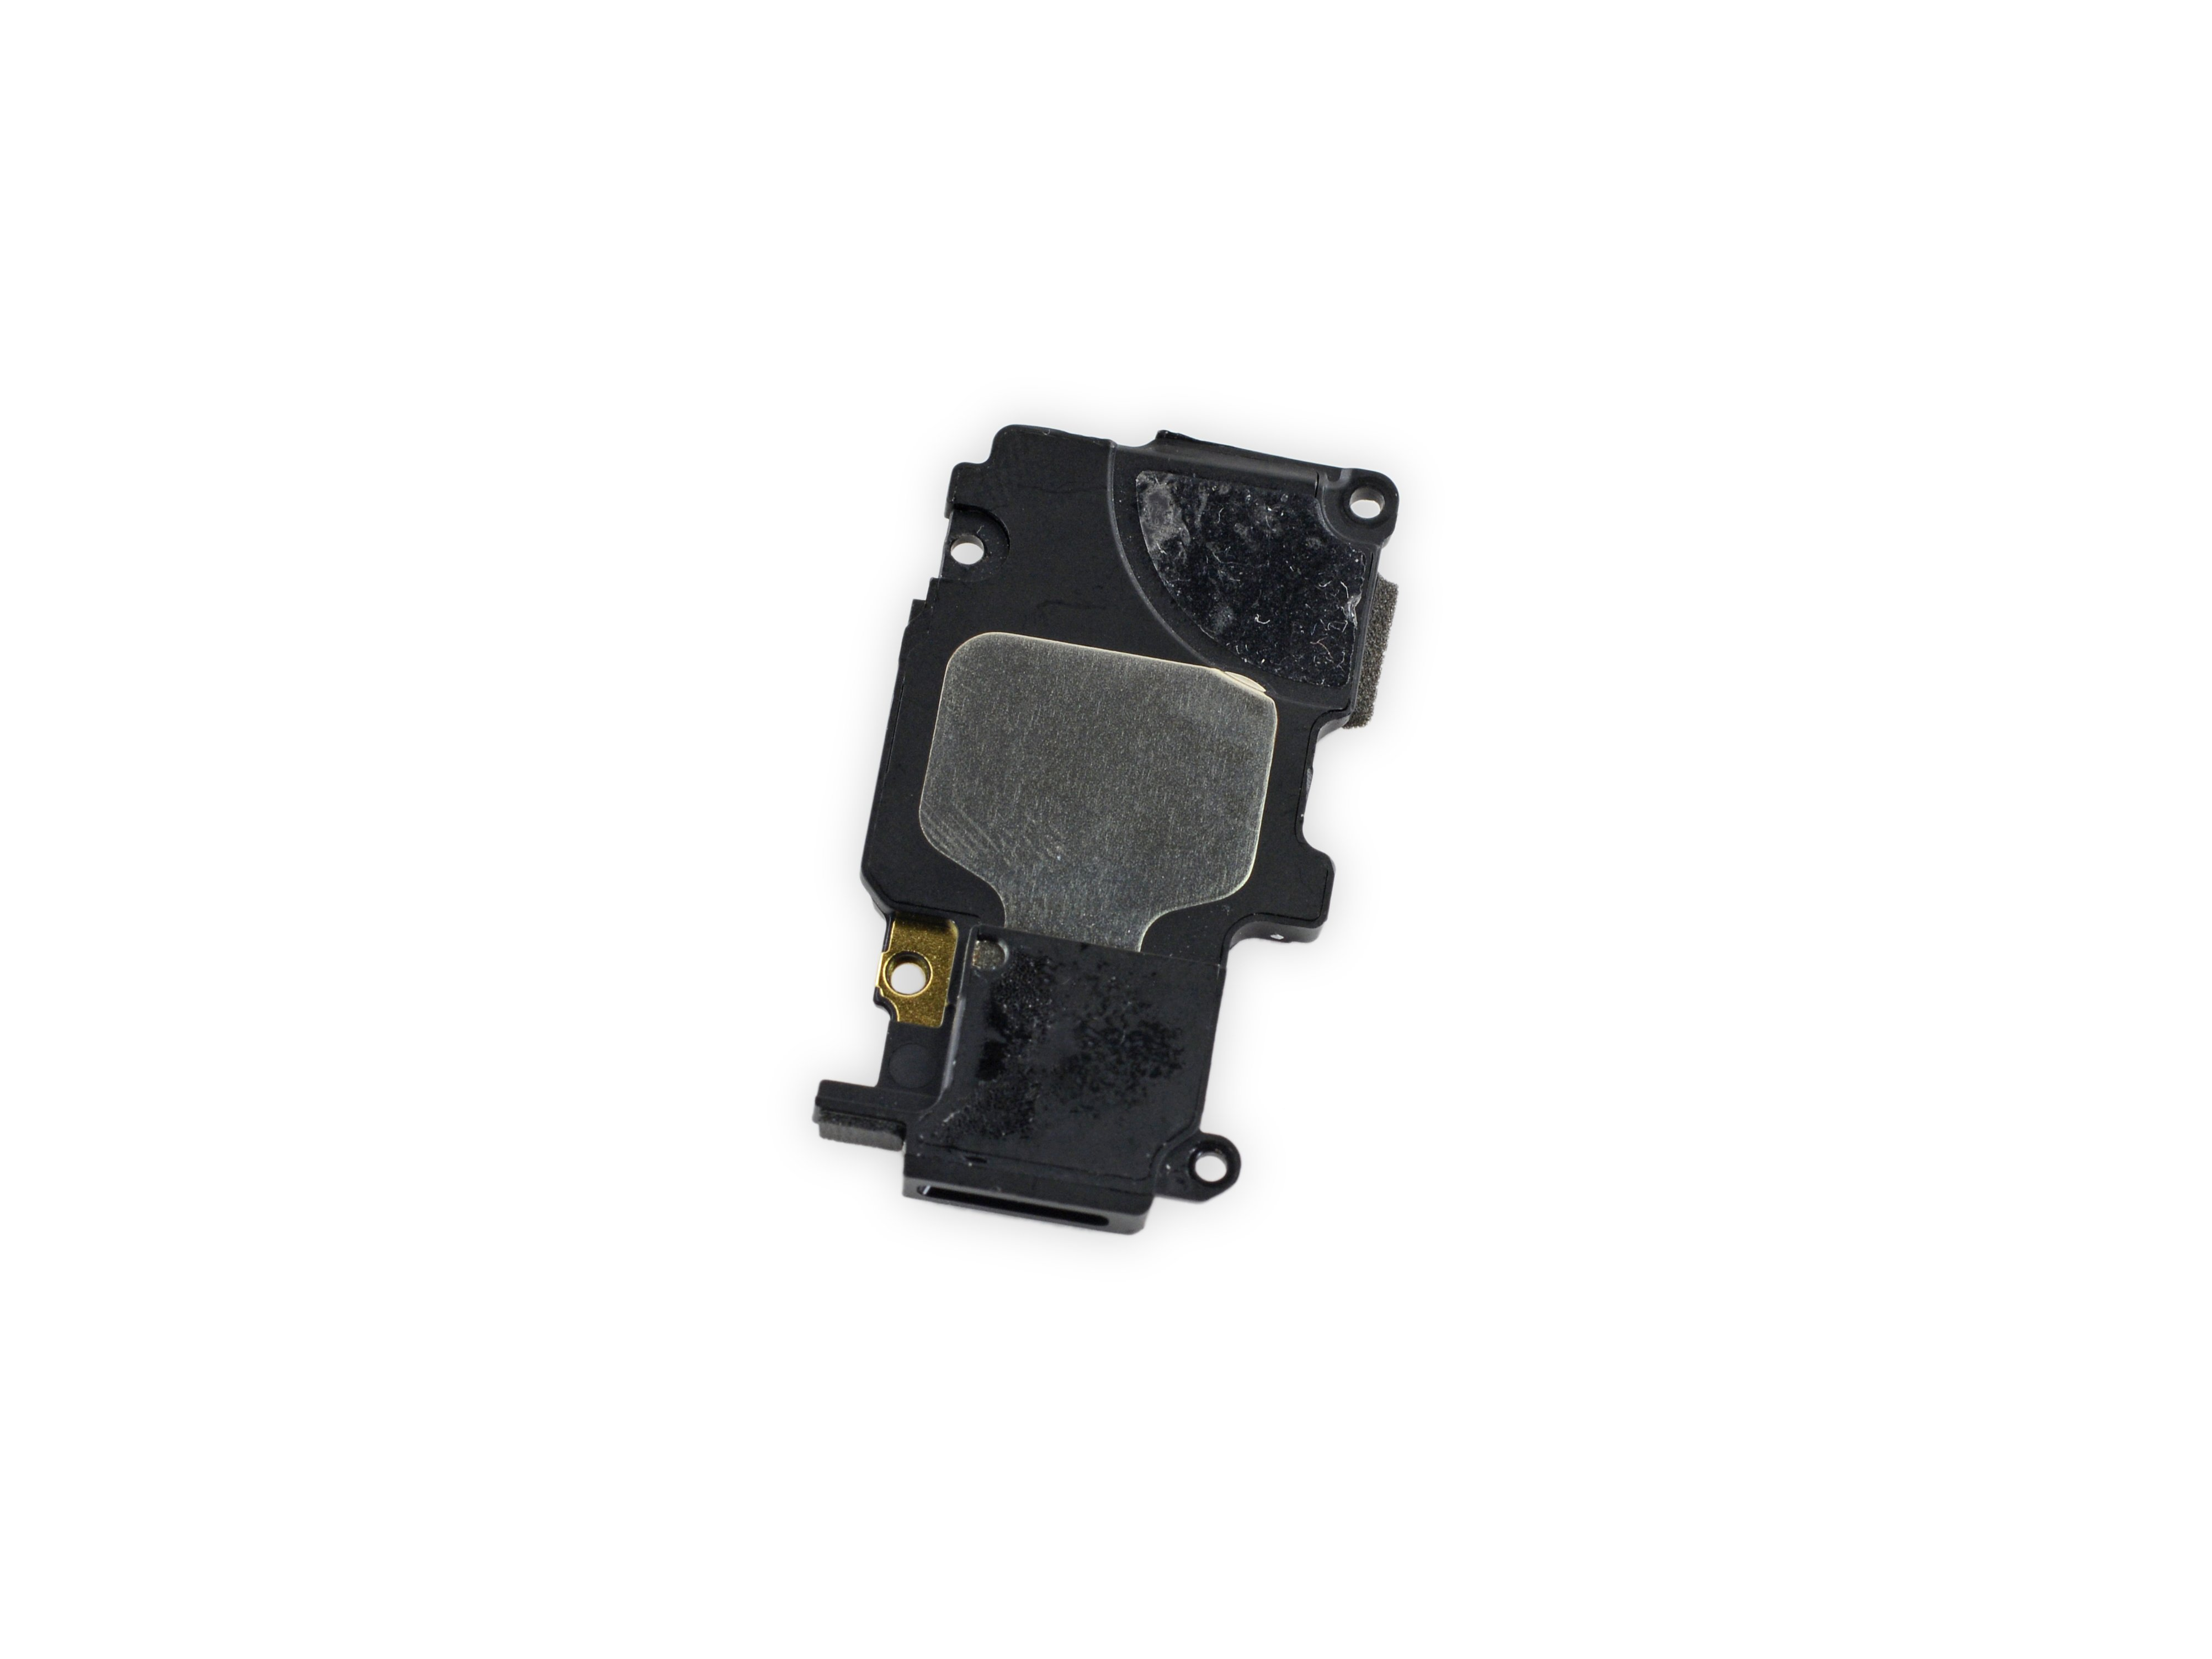 new style fc34b d3793 iPhone 6s Speaker Replacement - iFixit Repair Guide